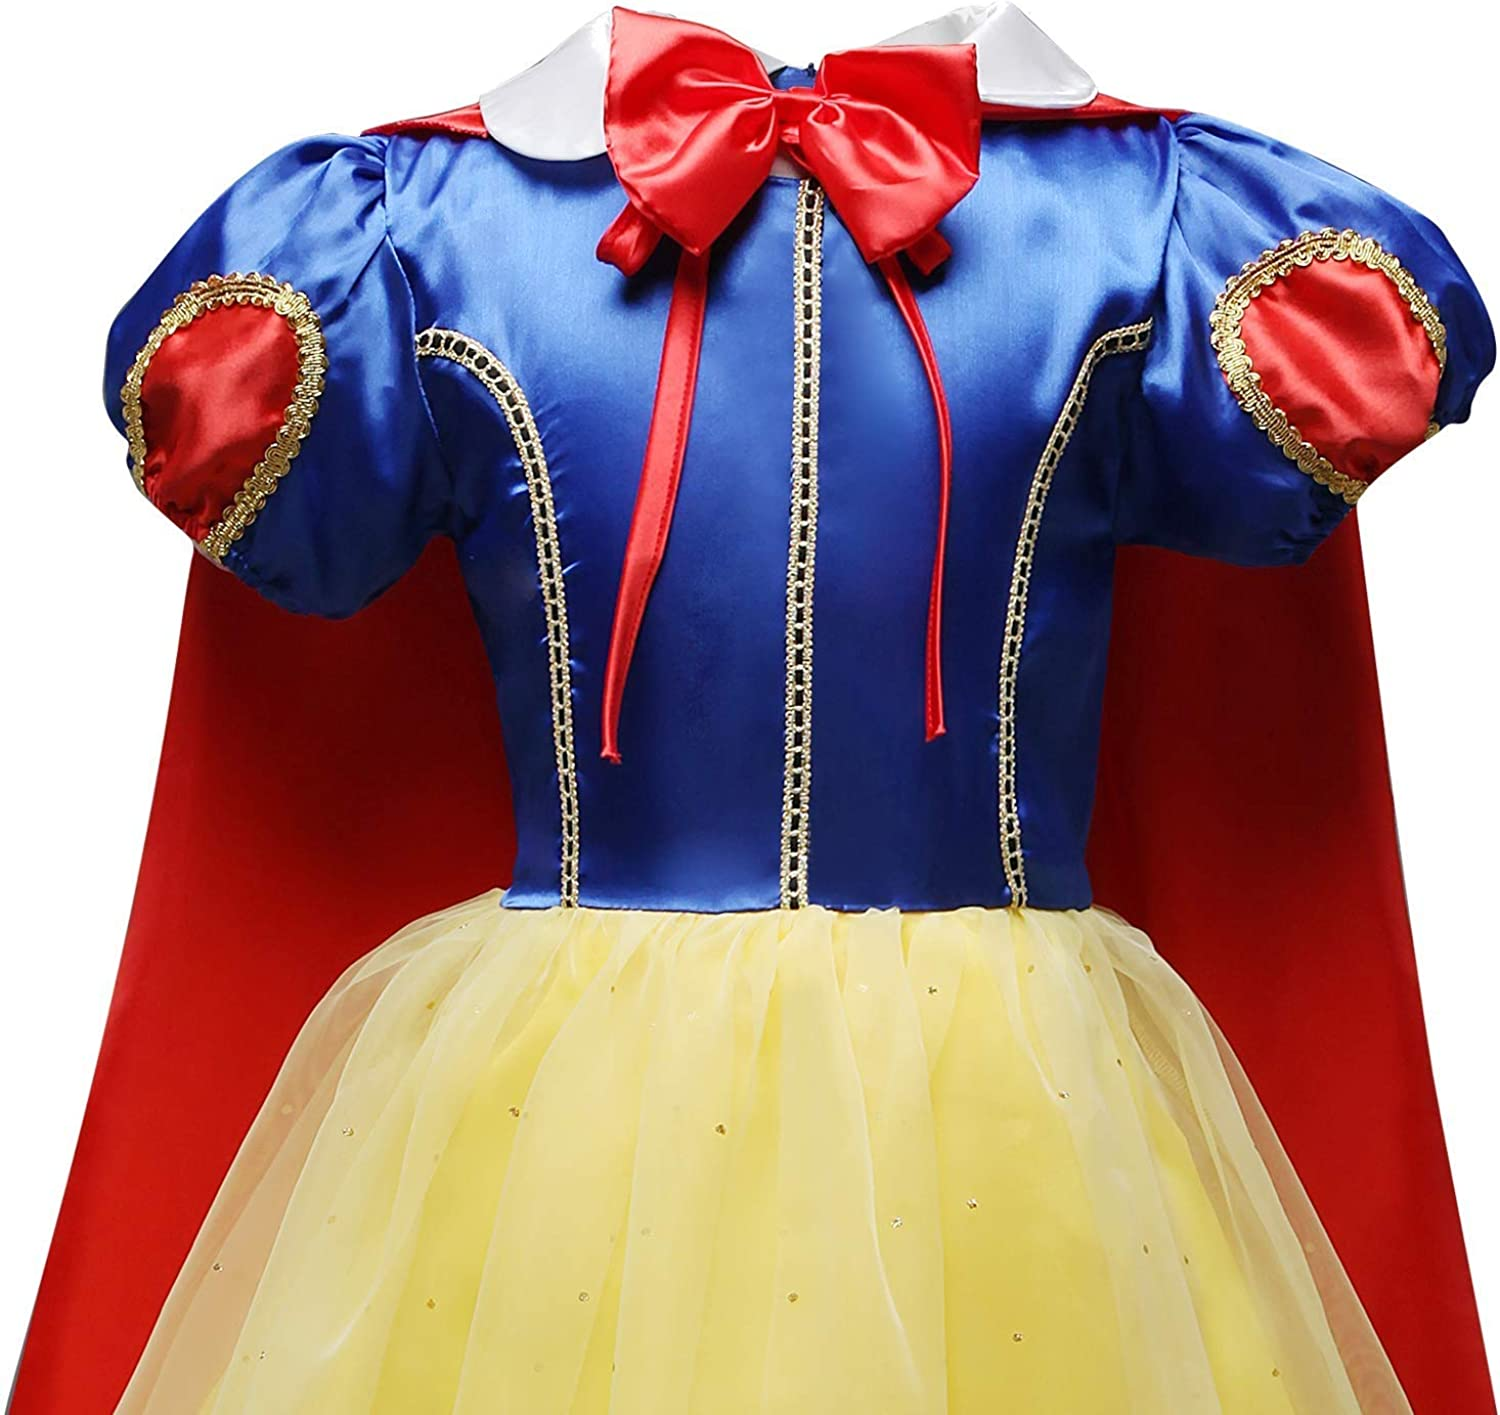 Accessories FMYFWY Girls Snow White Princess Costume Carnival Halloween Christmas Birthday Dress Dance Ball Gown w//Cloak